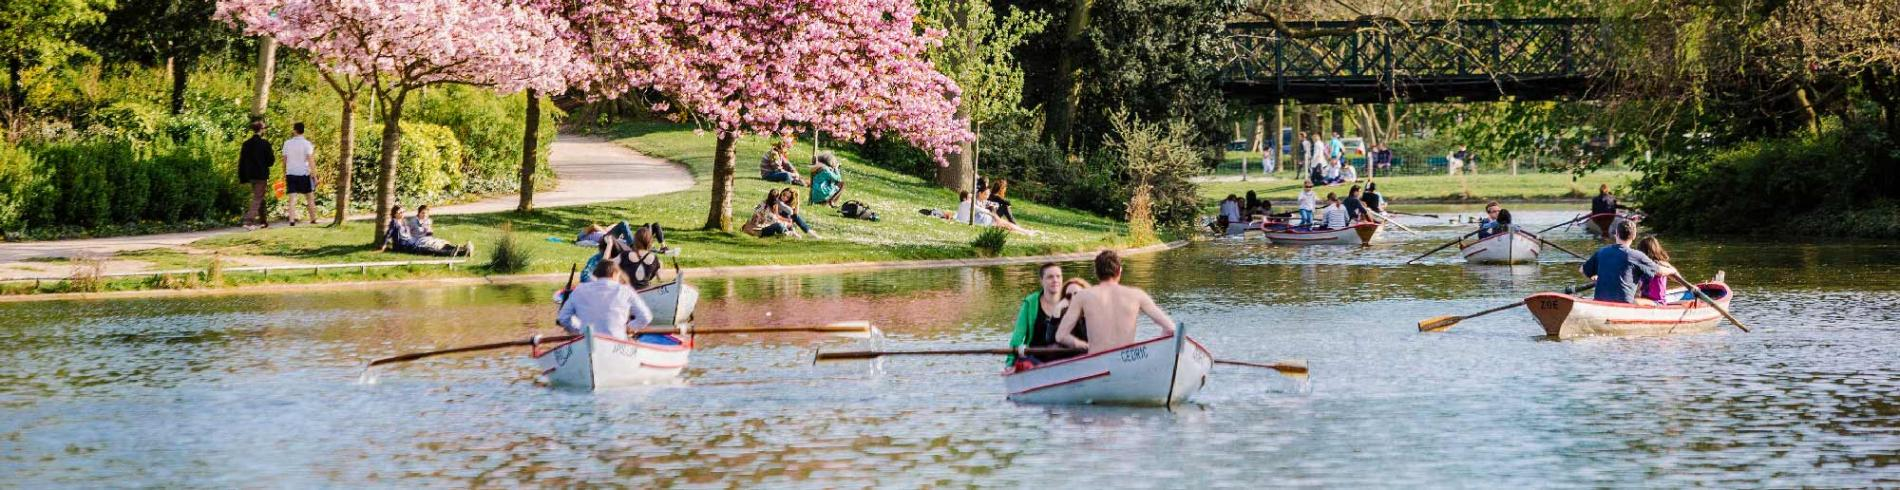 People rowing on the lake at the Bois de Vincennes